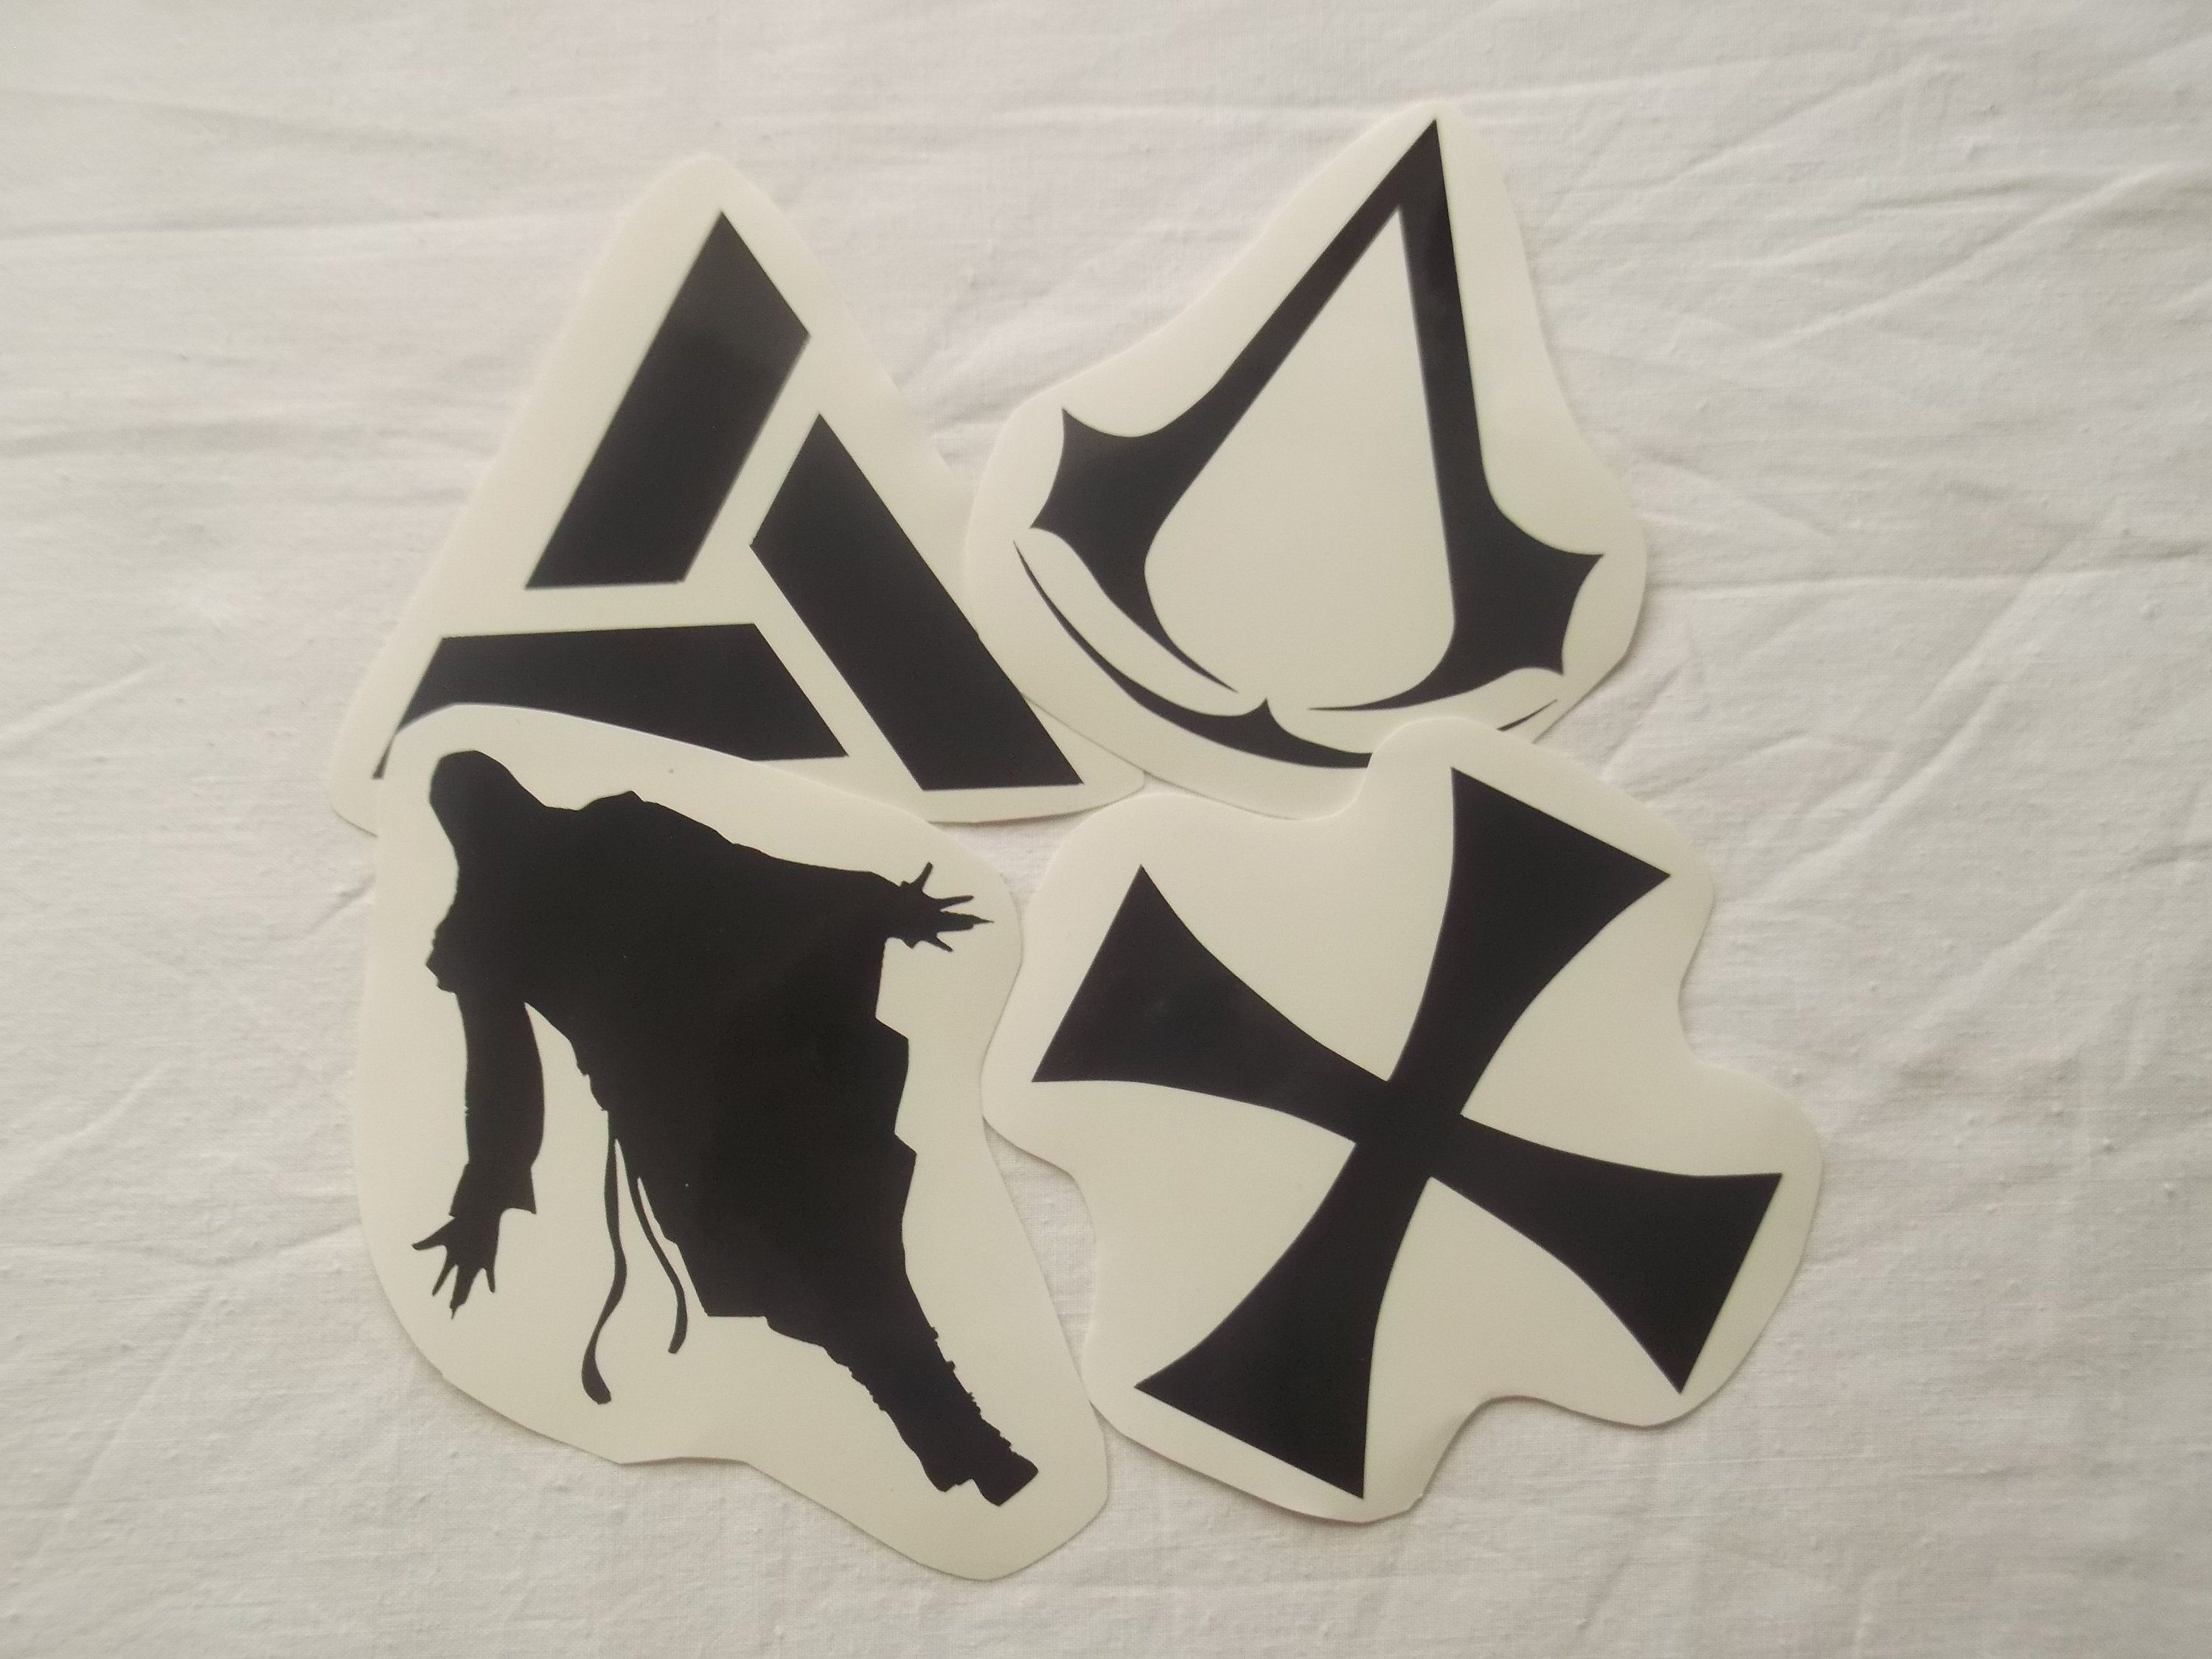 Assassin's Creed Themed Stickers/Decals Assassin's Creed